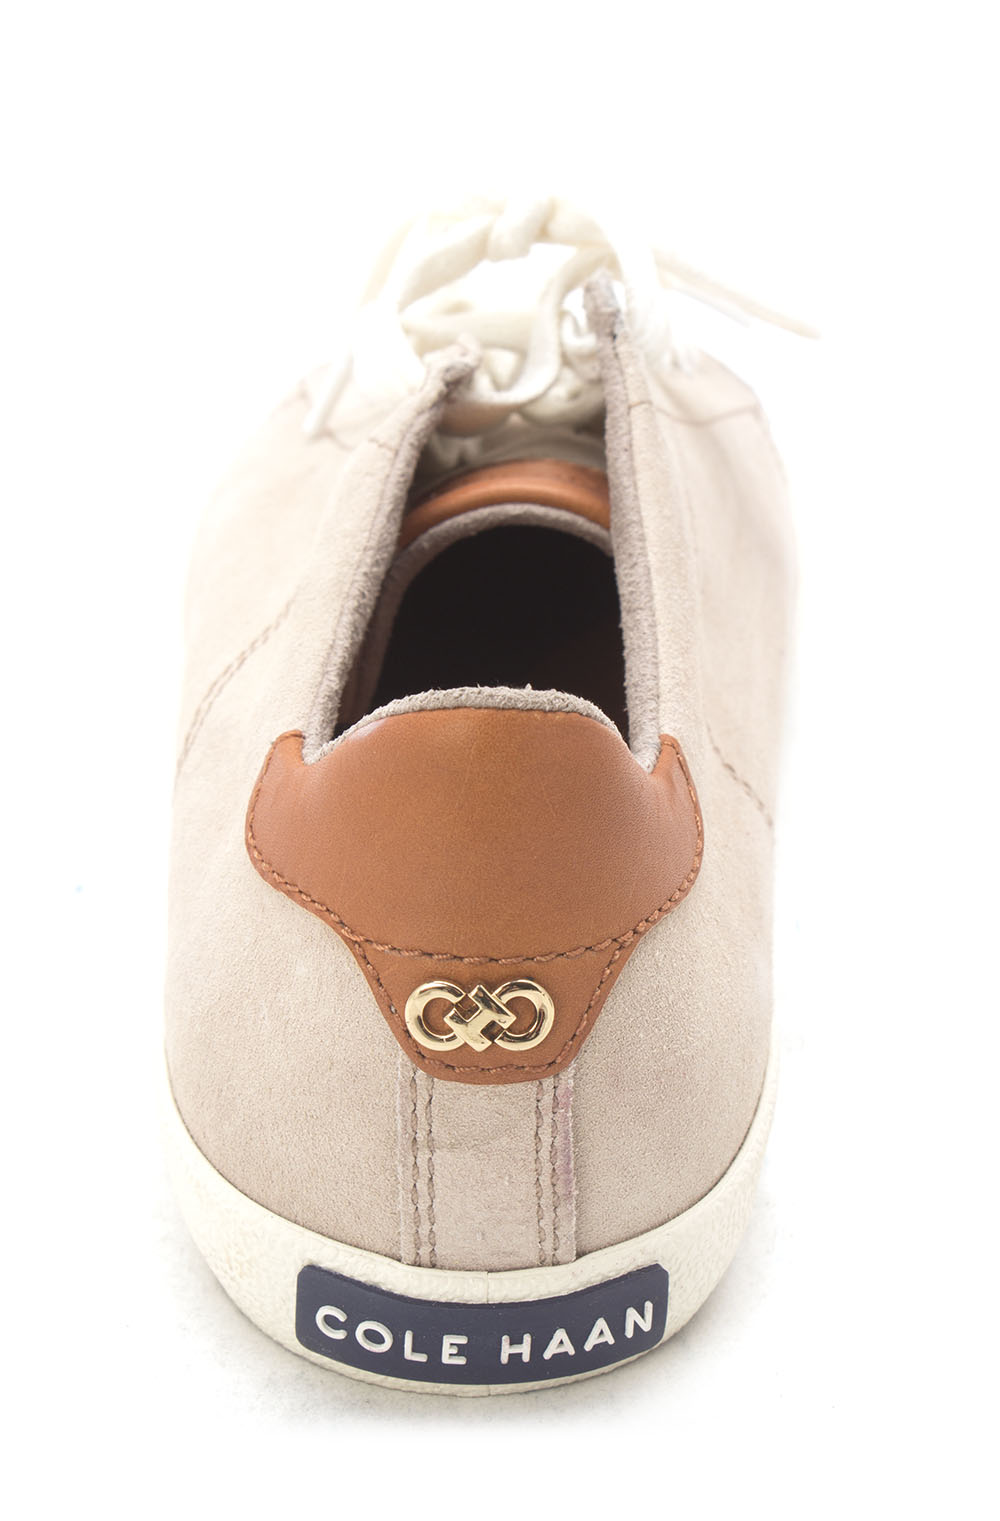 Cole Haan Womens Innozentiasam Low Top Lace Up Fashion, Beige/Brown, Size 6.0